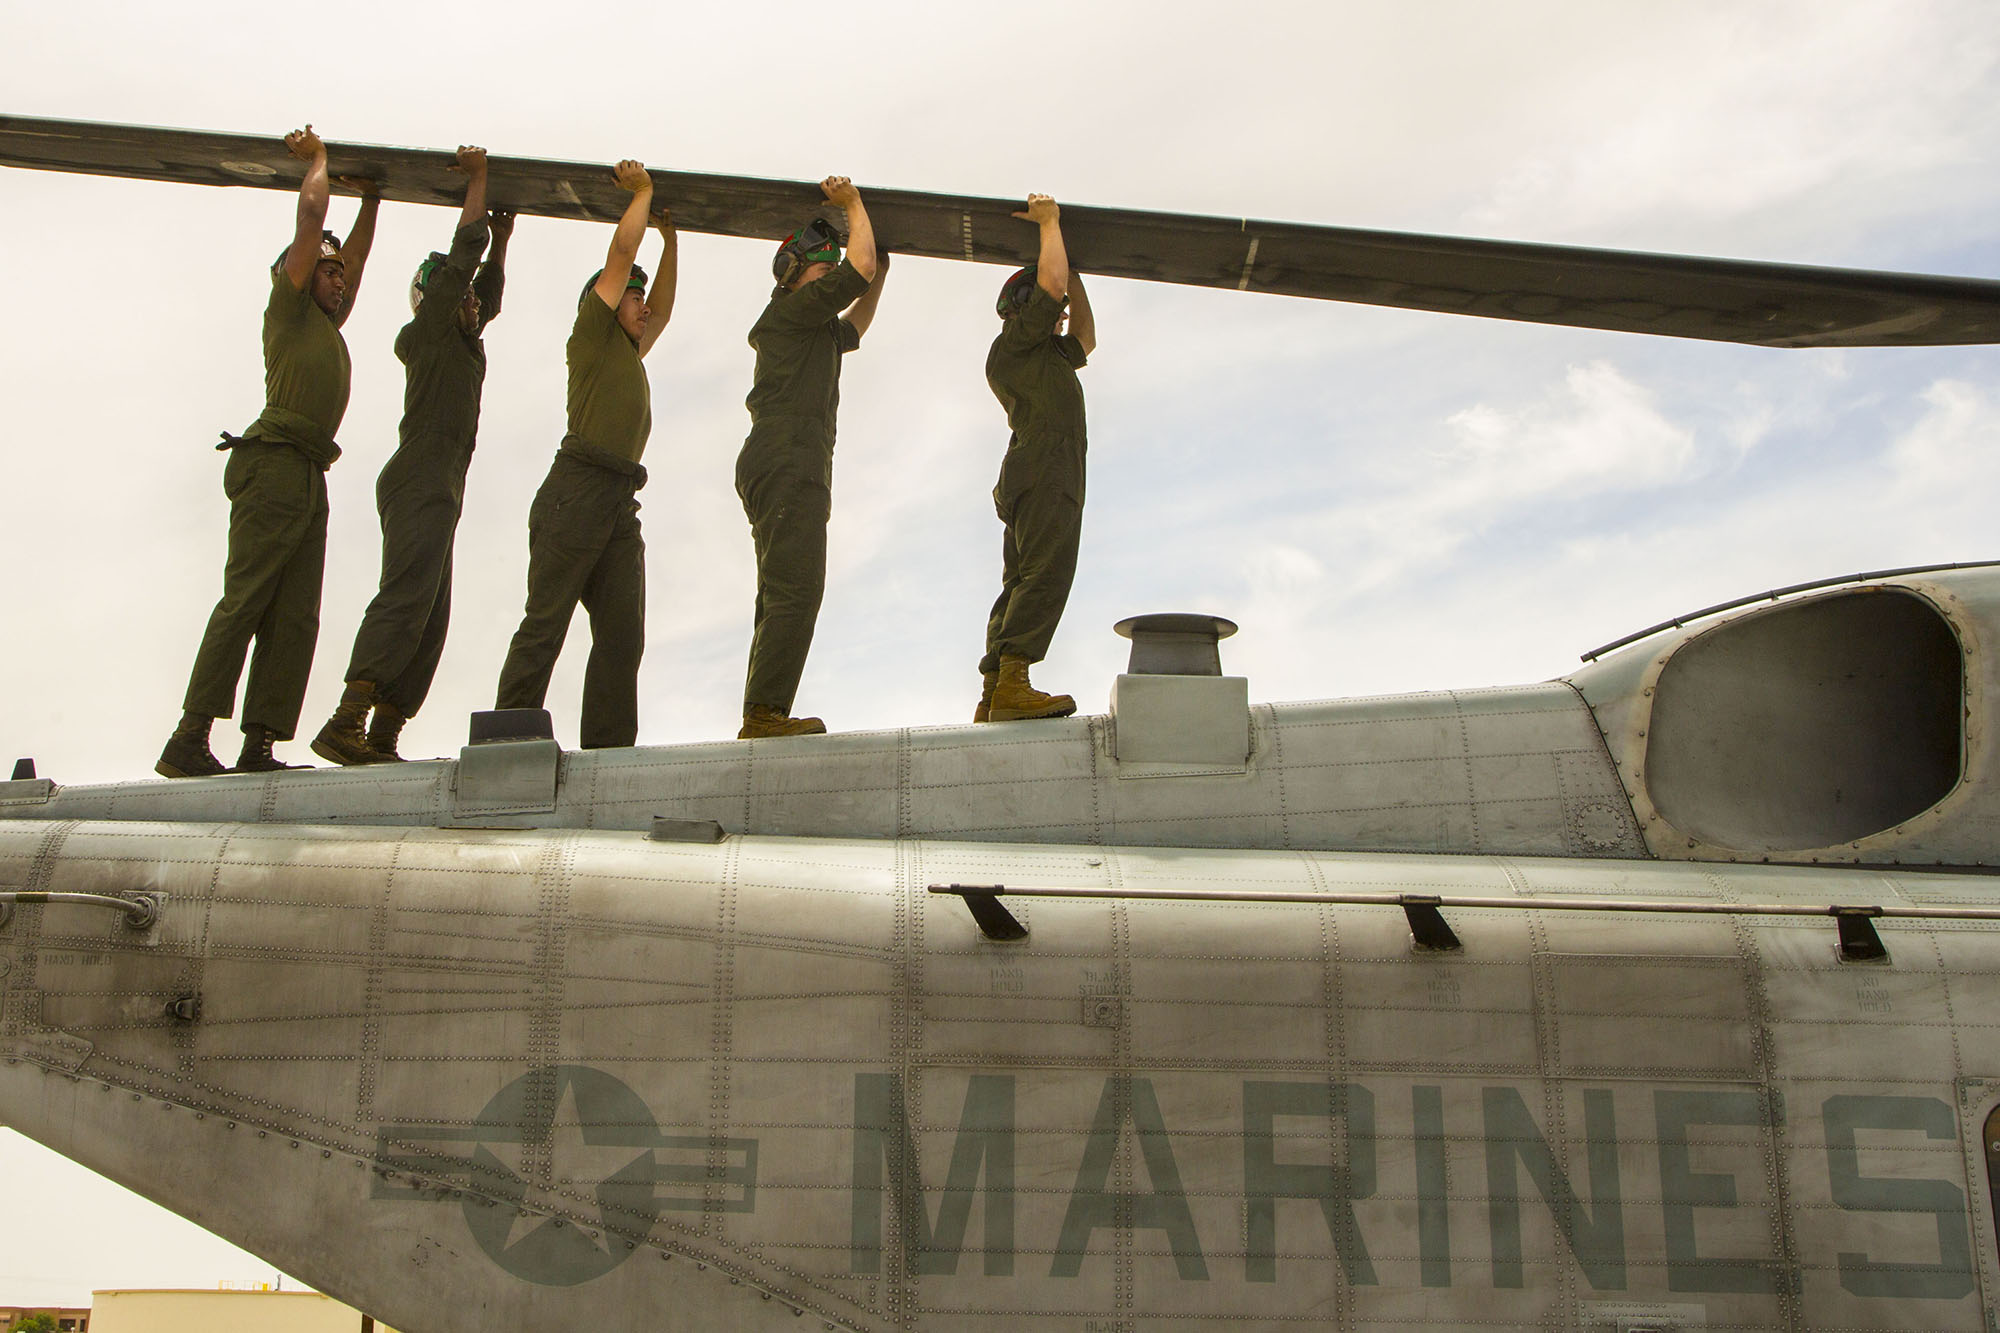 U.S. Marine Corps CH-53E aircraft maintainers perform routine maintenance at Naval Air Station Fallon, Nev., June 16, 2021. (Lance Cpl. Rachaelanne Woodward/Marine Corps)